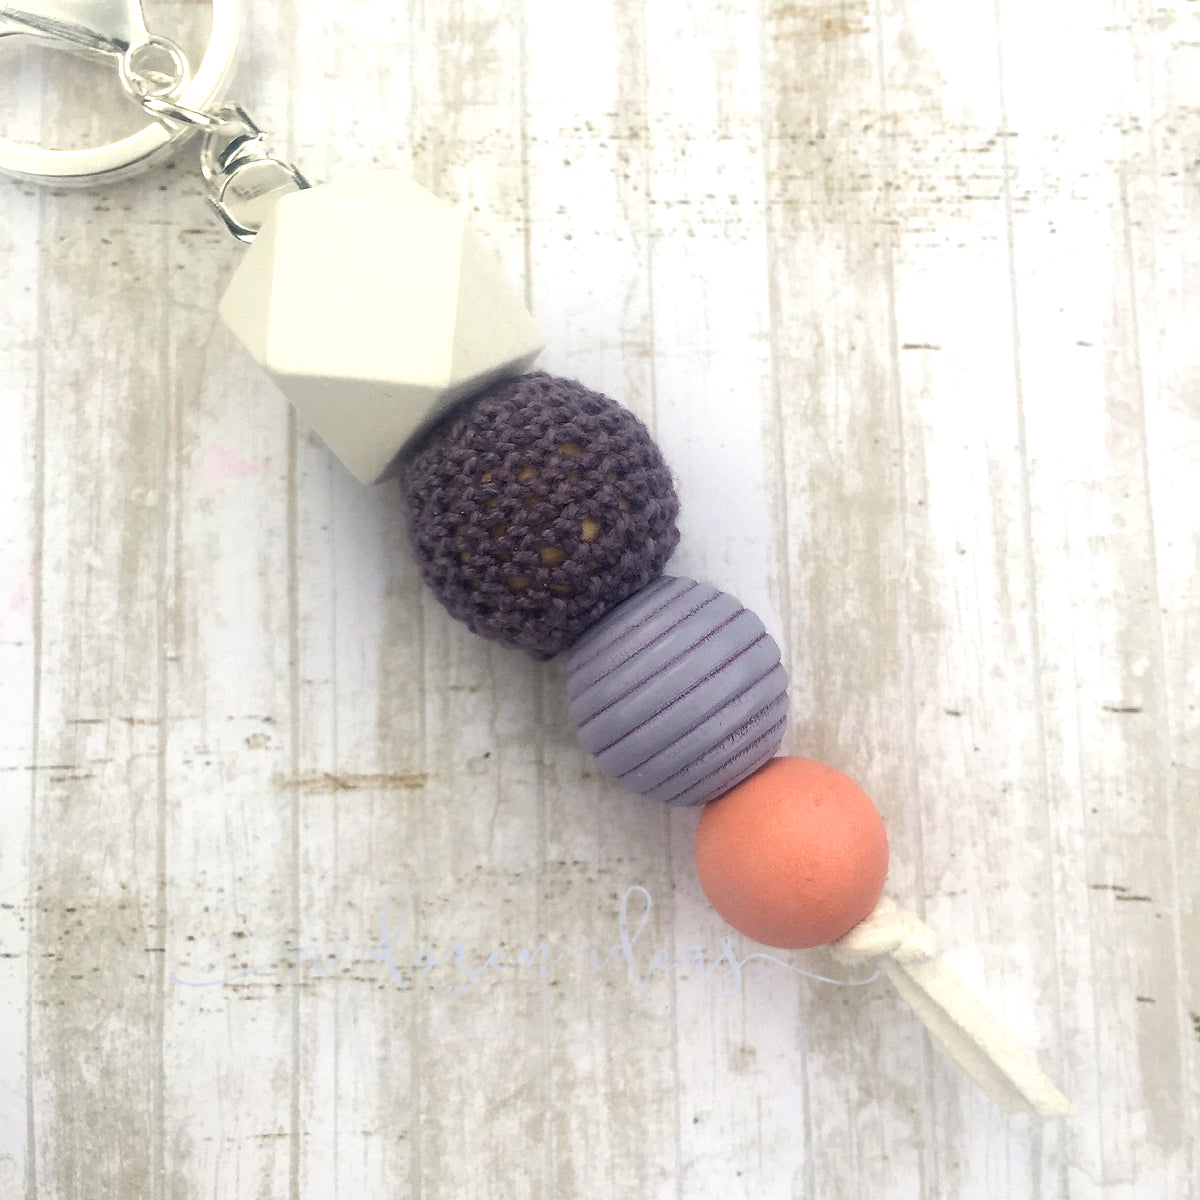 Geo Keyring - Blueberry Peach Crumble